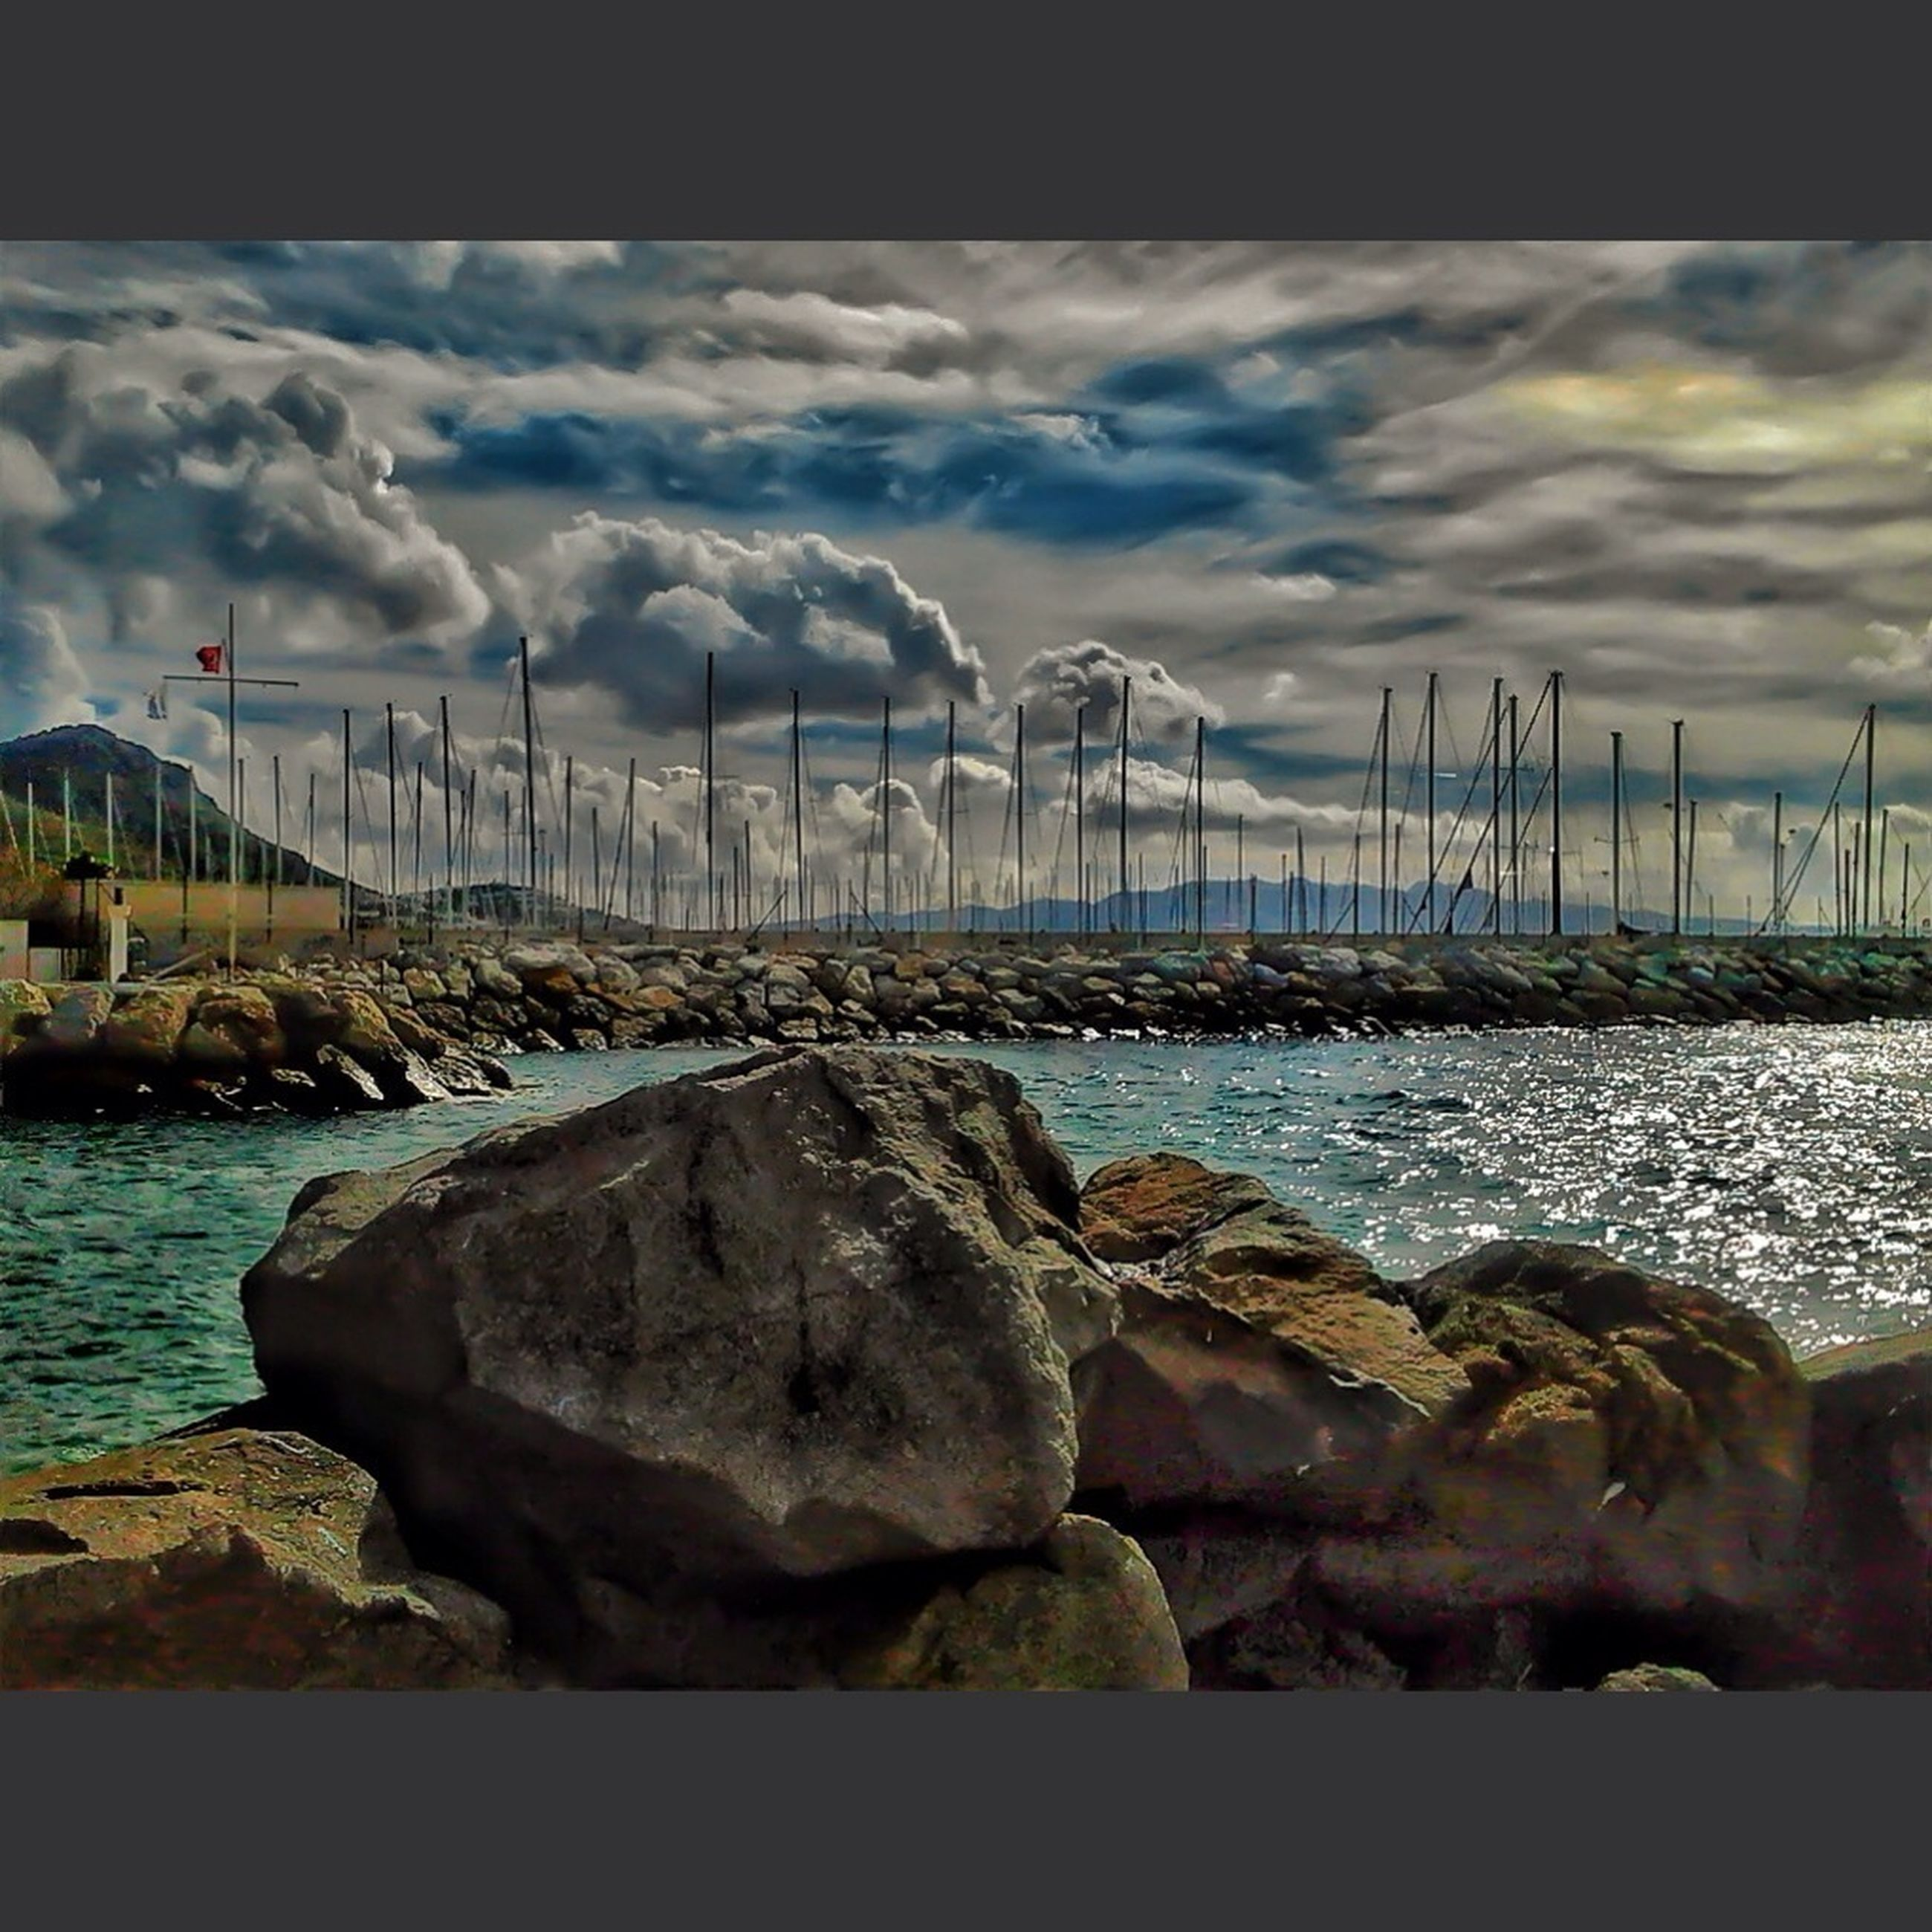 water, sea, sky, cloud - sky, beach, cloudy, rock - object, shore, tranquility, tranquil scene, horizon over water, cloud, scenics, nature, beauty in nature, pier, overcast, auto post production filter, stone - object, idyllic